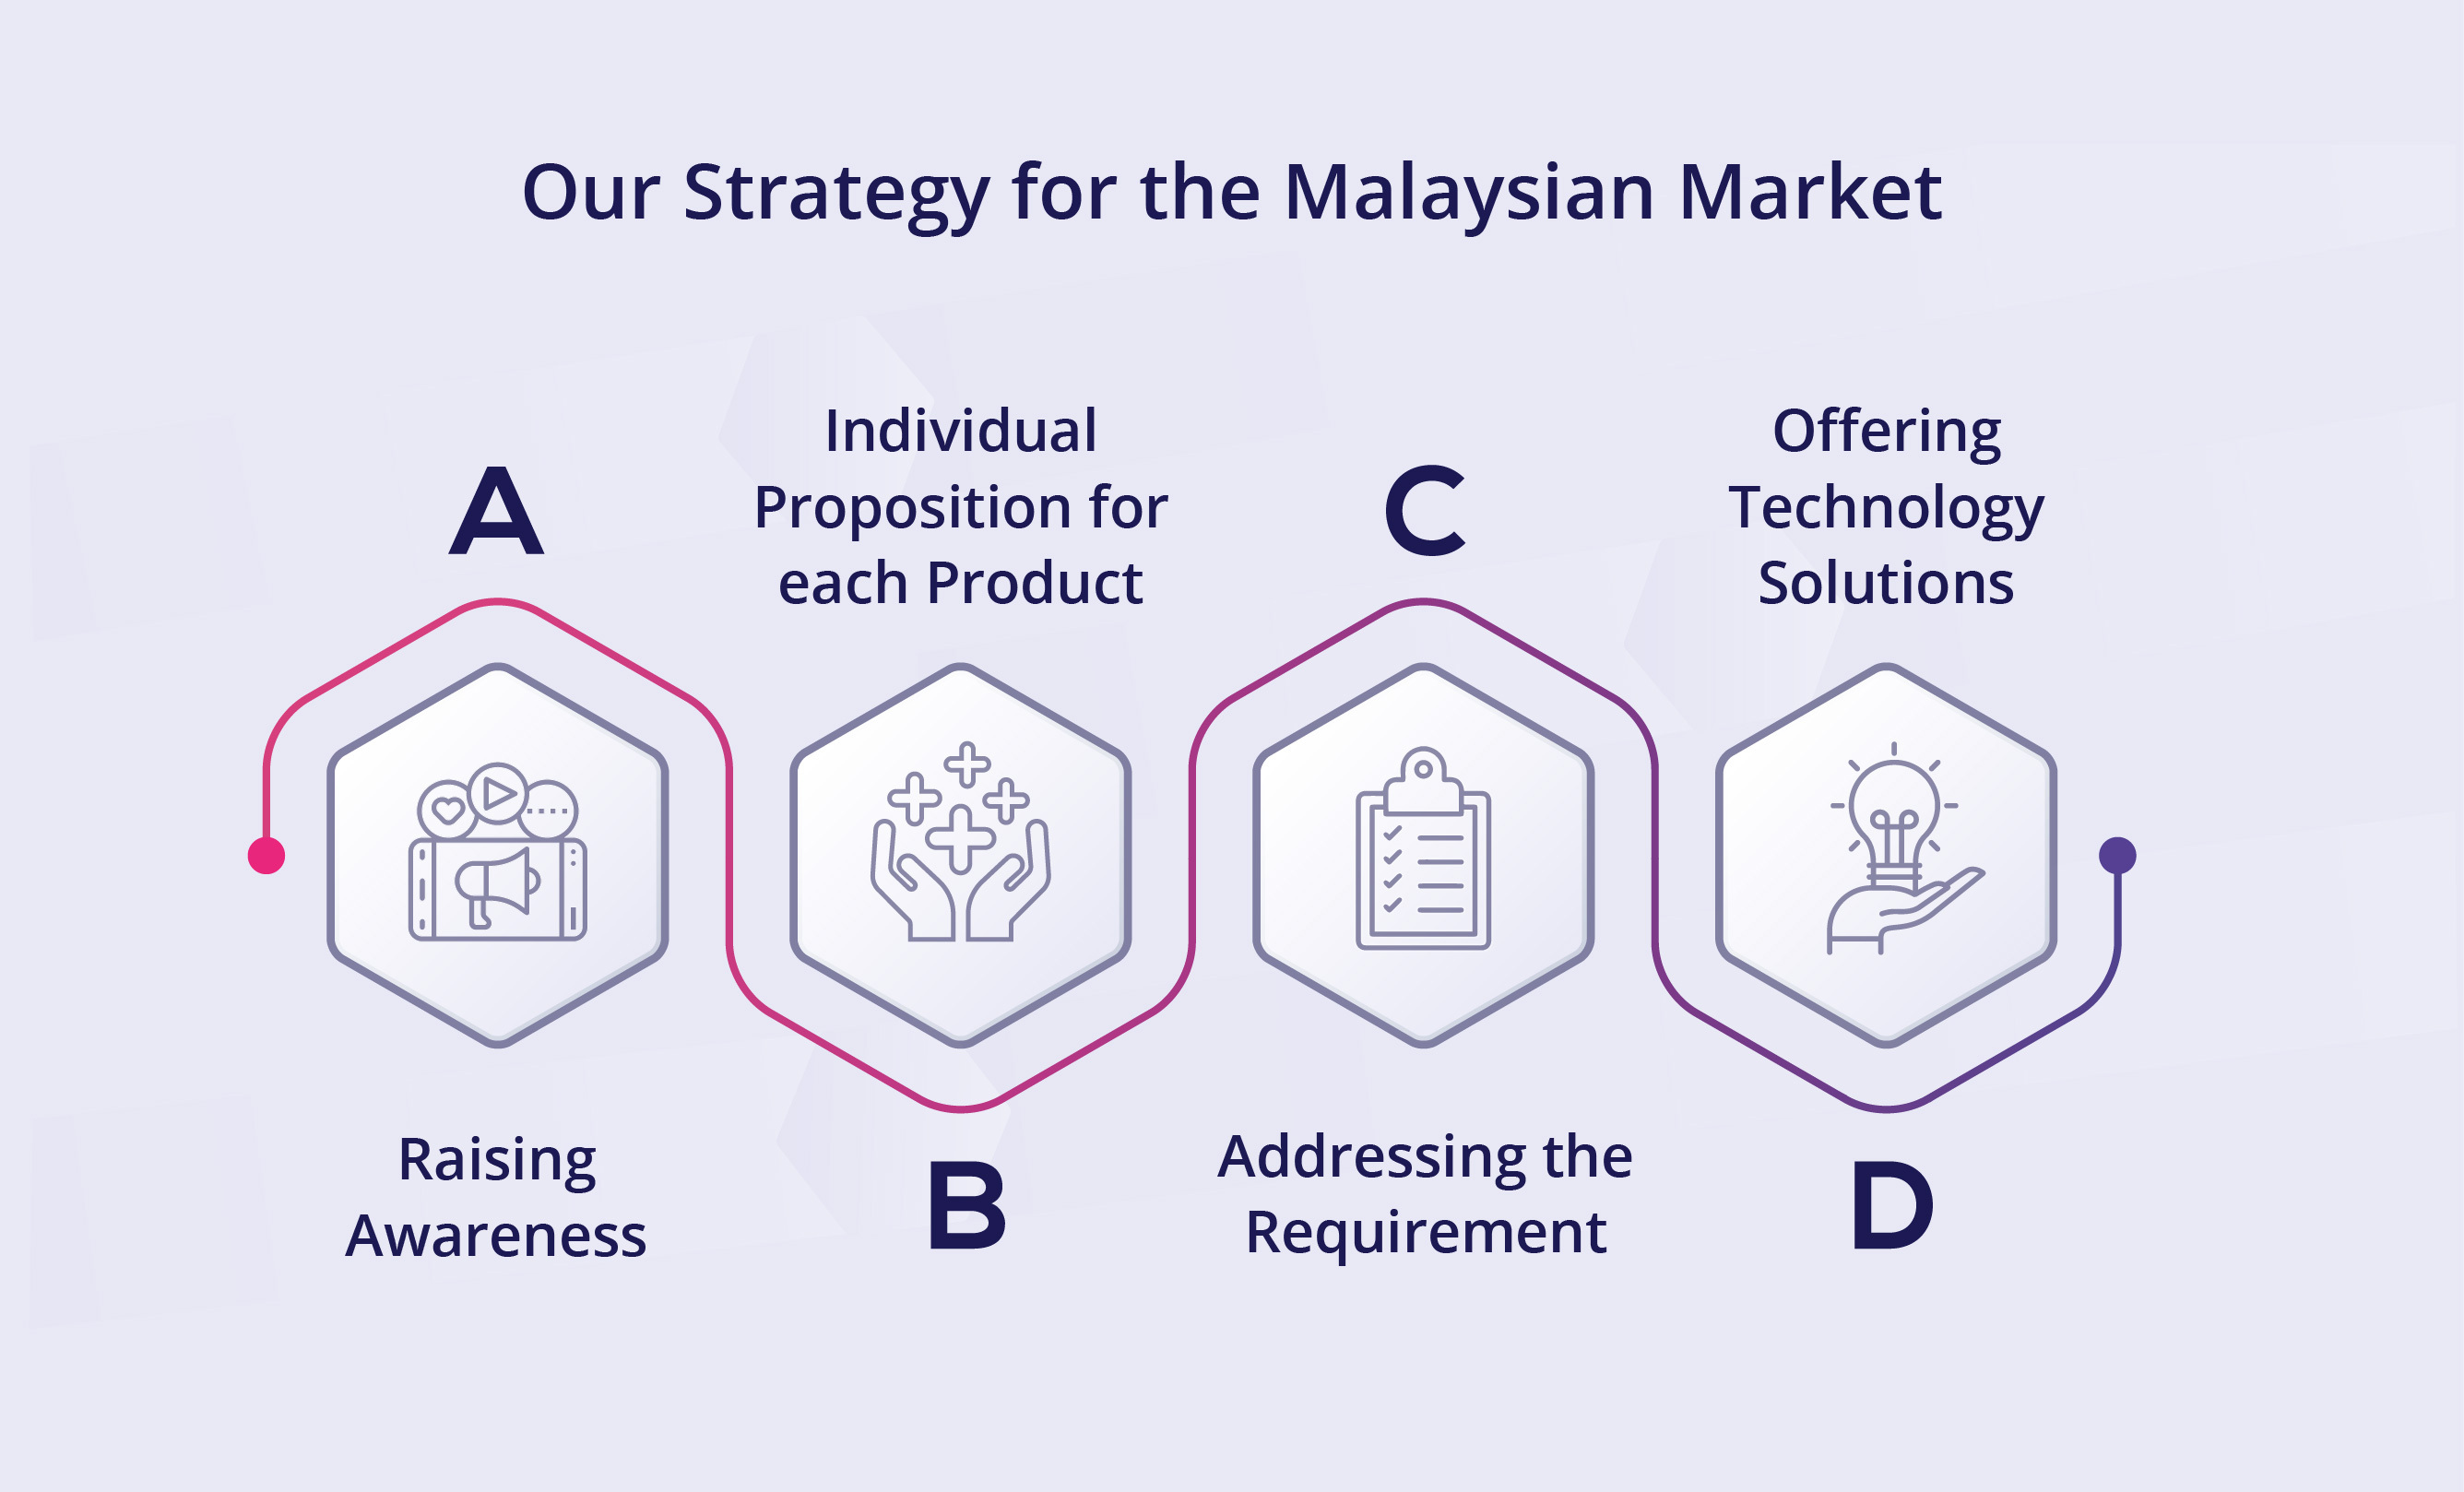 Our Strategy for the Malaysian Market